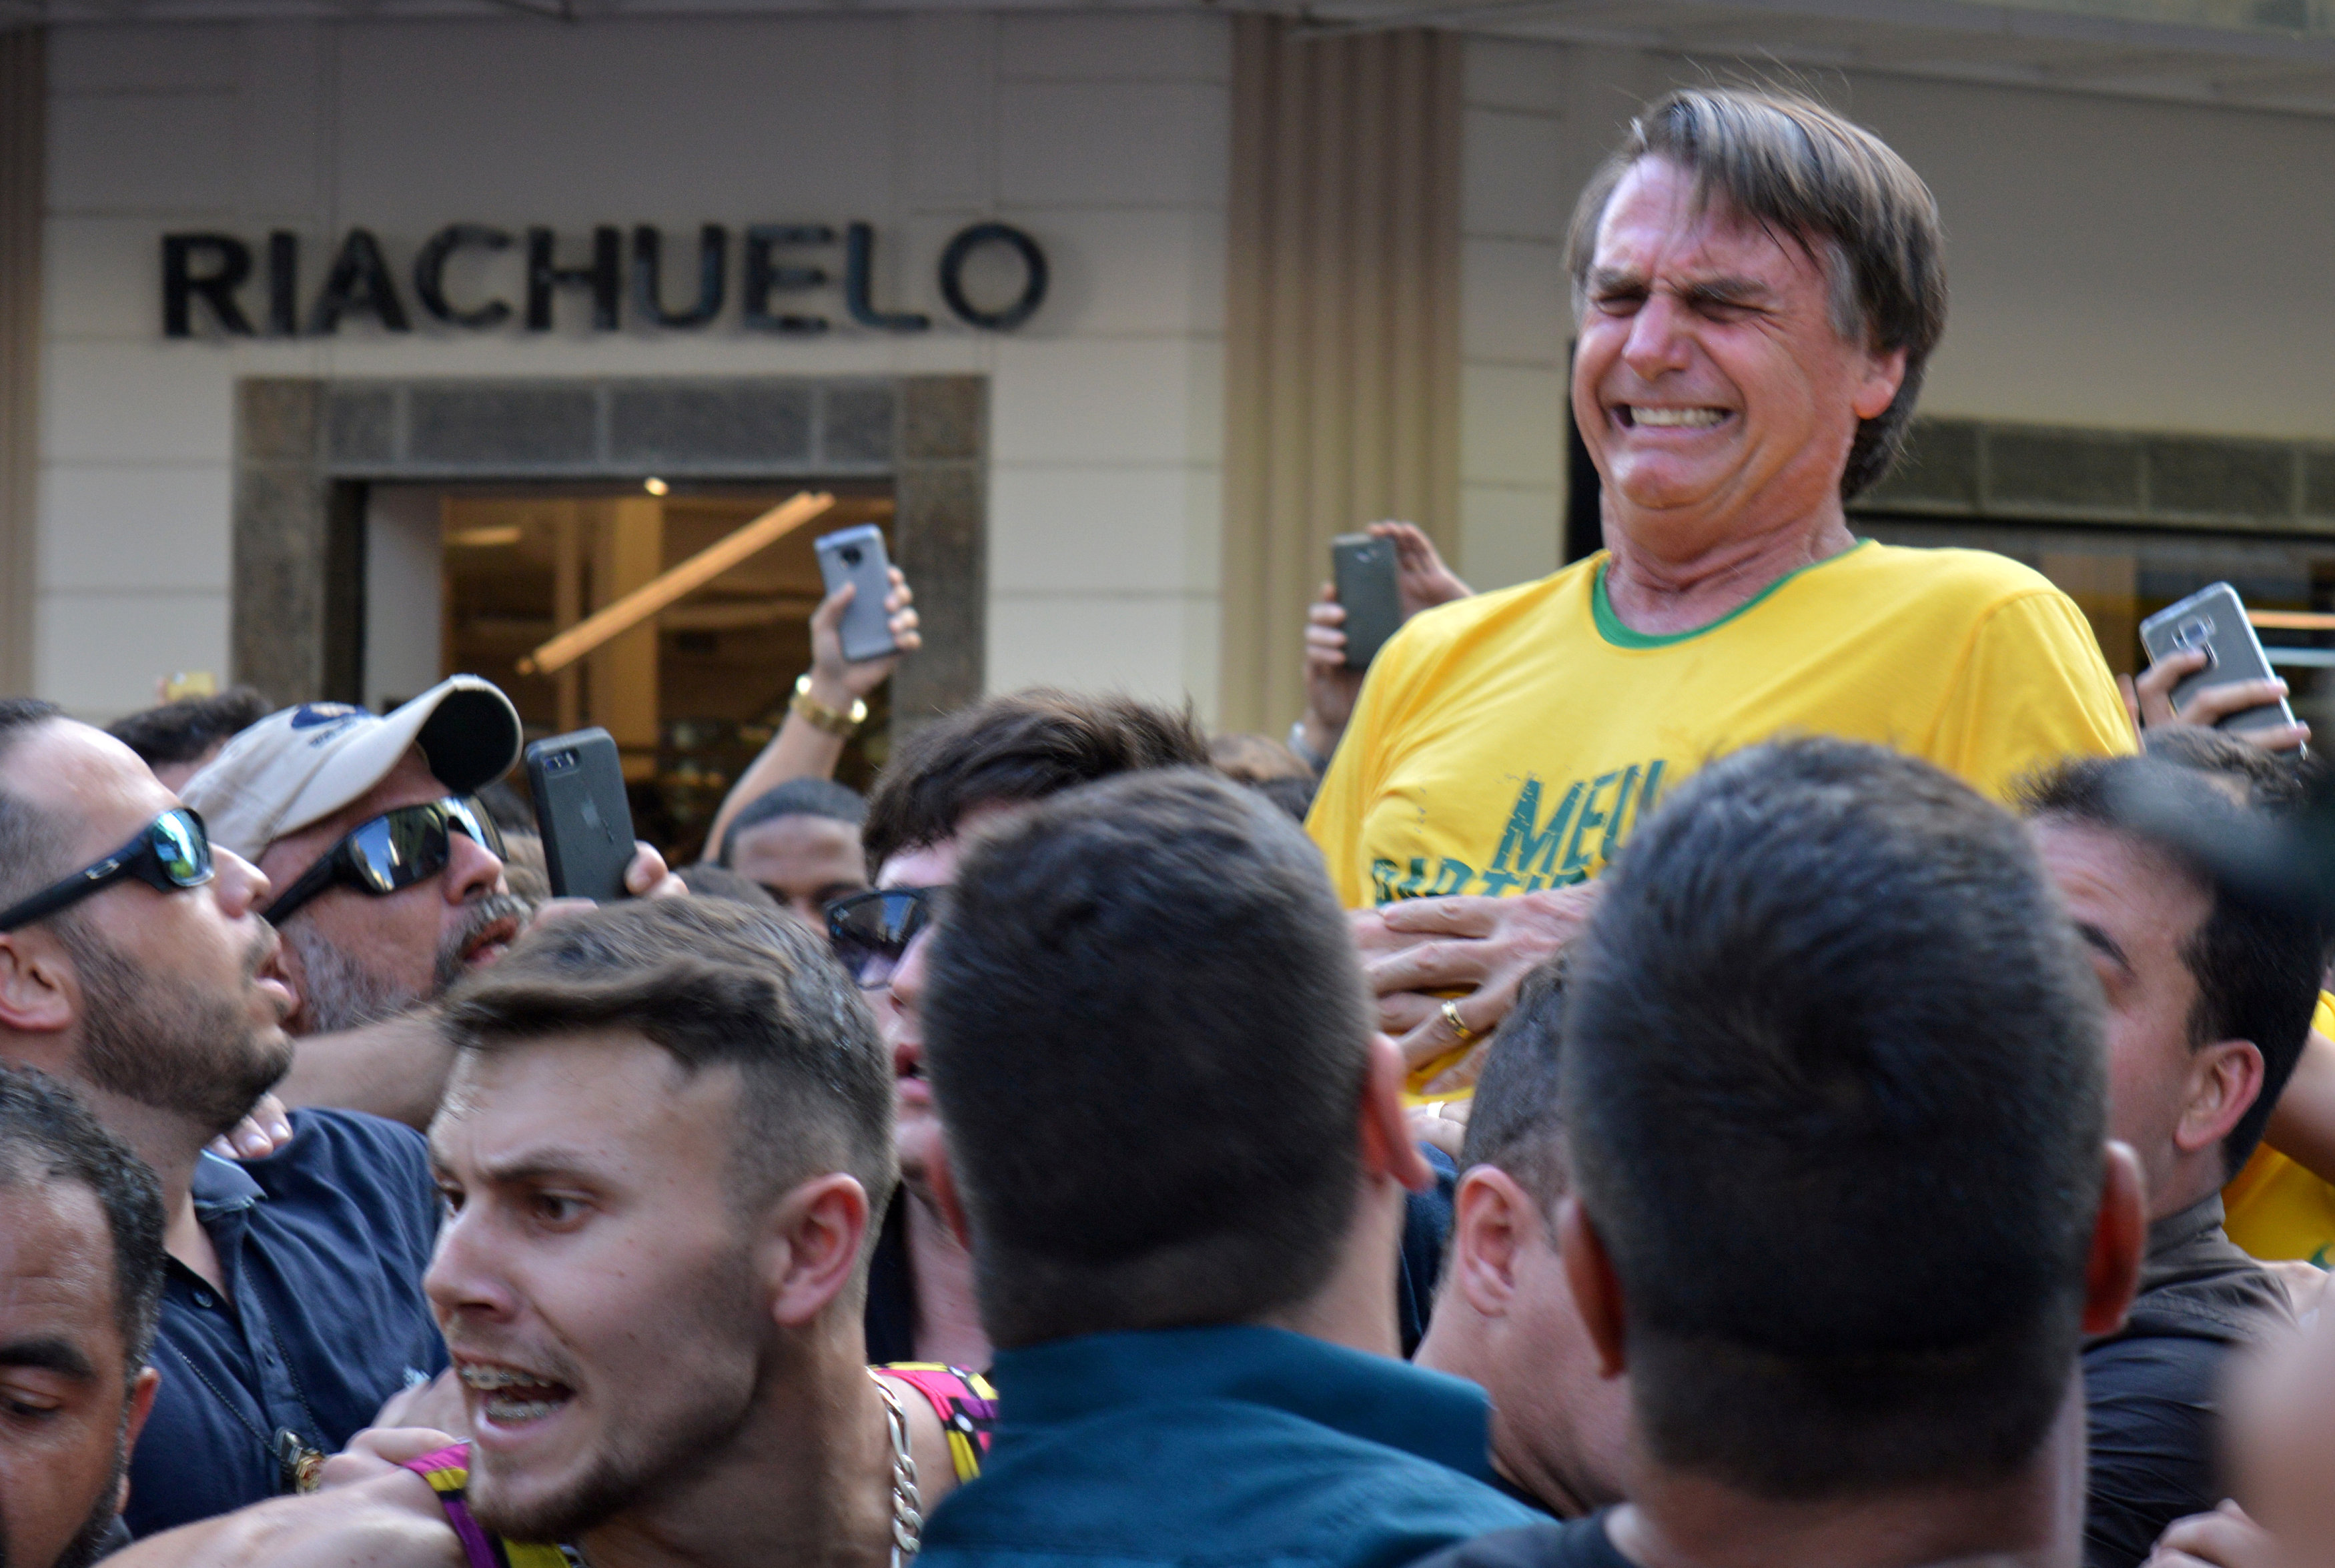 FILE PHOTO: Brazilian presidential candidate Jair Bolsonaro reacts after being stabbed during a rally in Juiz de Fora, Minas Gerais state, Brazil September 6, 2018.REUTERS/Raysa Campos Leite